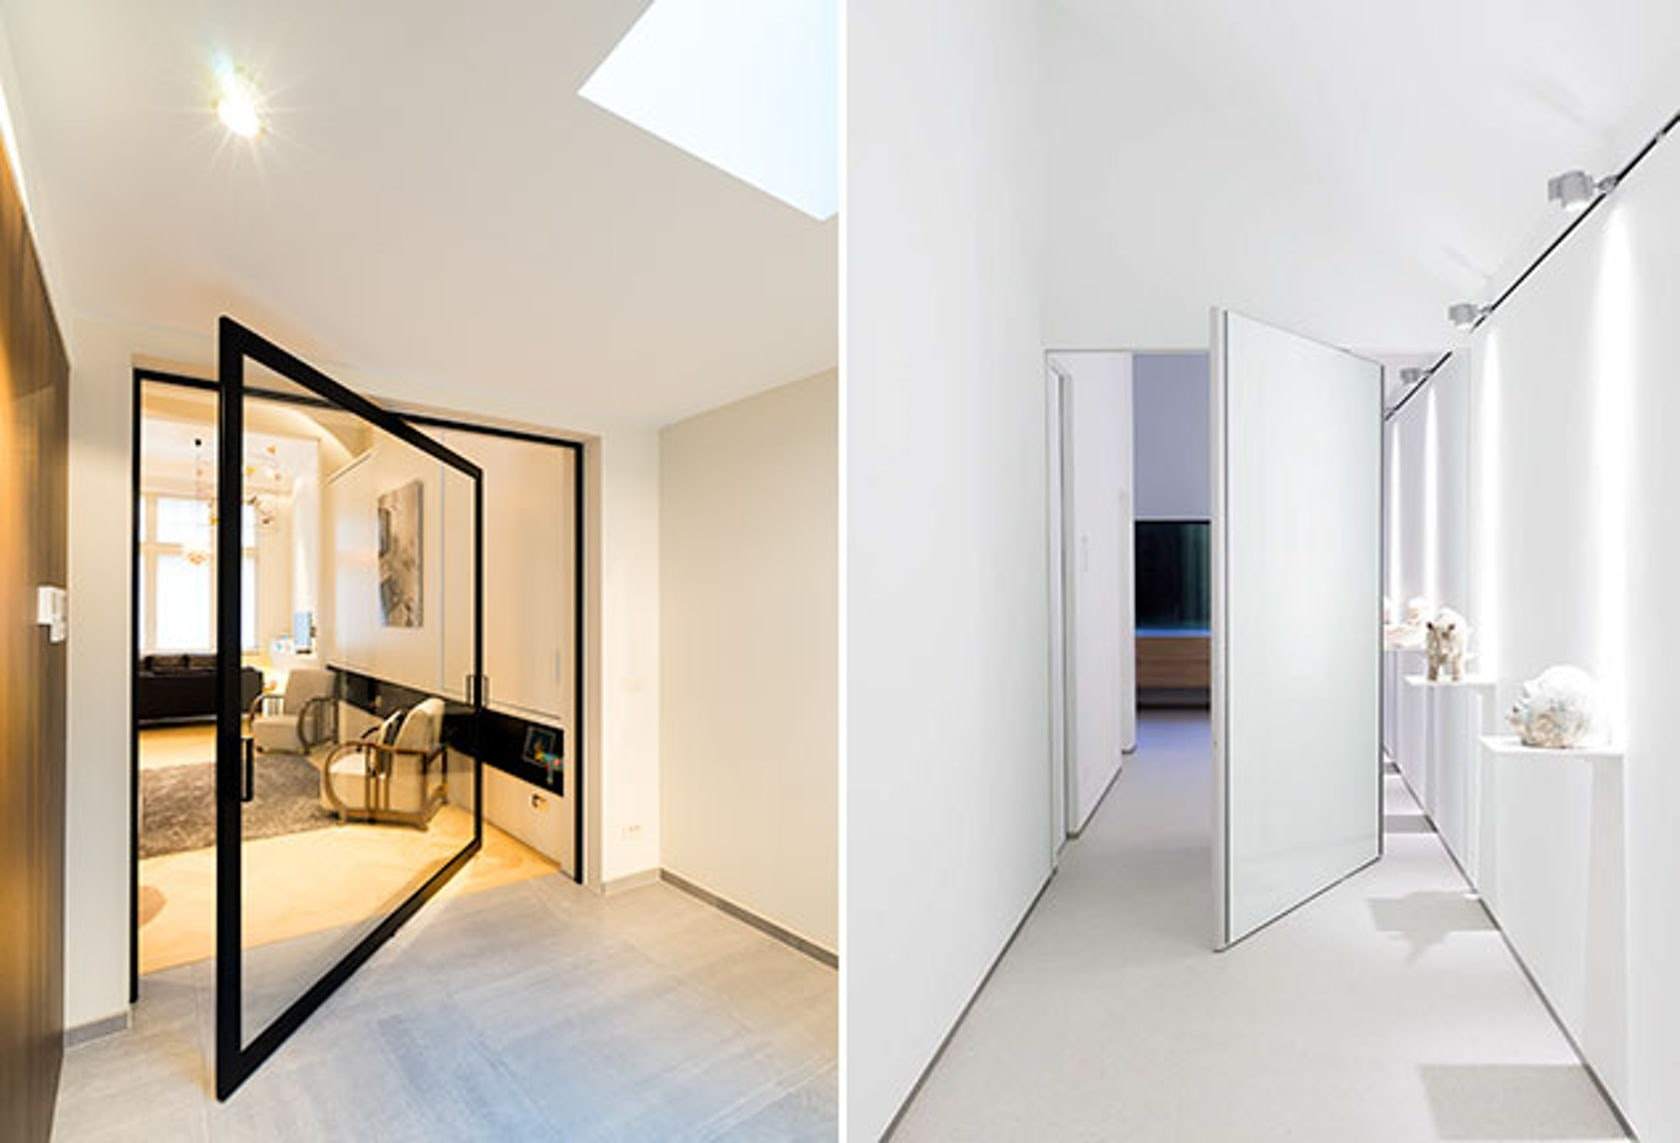 But the reality is that hidden doors \u2014 at least the kinds that are popping up in popular architectural projects outside of fiction novels and films \u2014 are ... & How to Detail a Perfectly Seamless Door - Architizer Journal